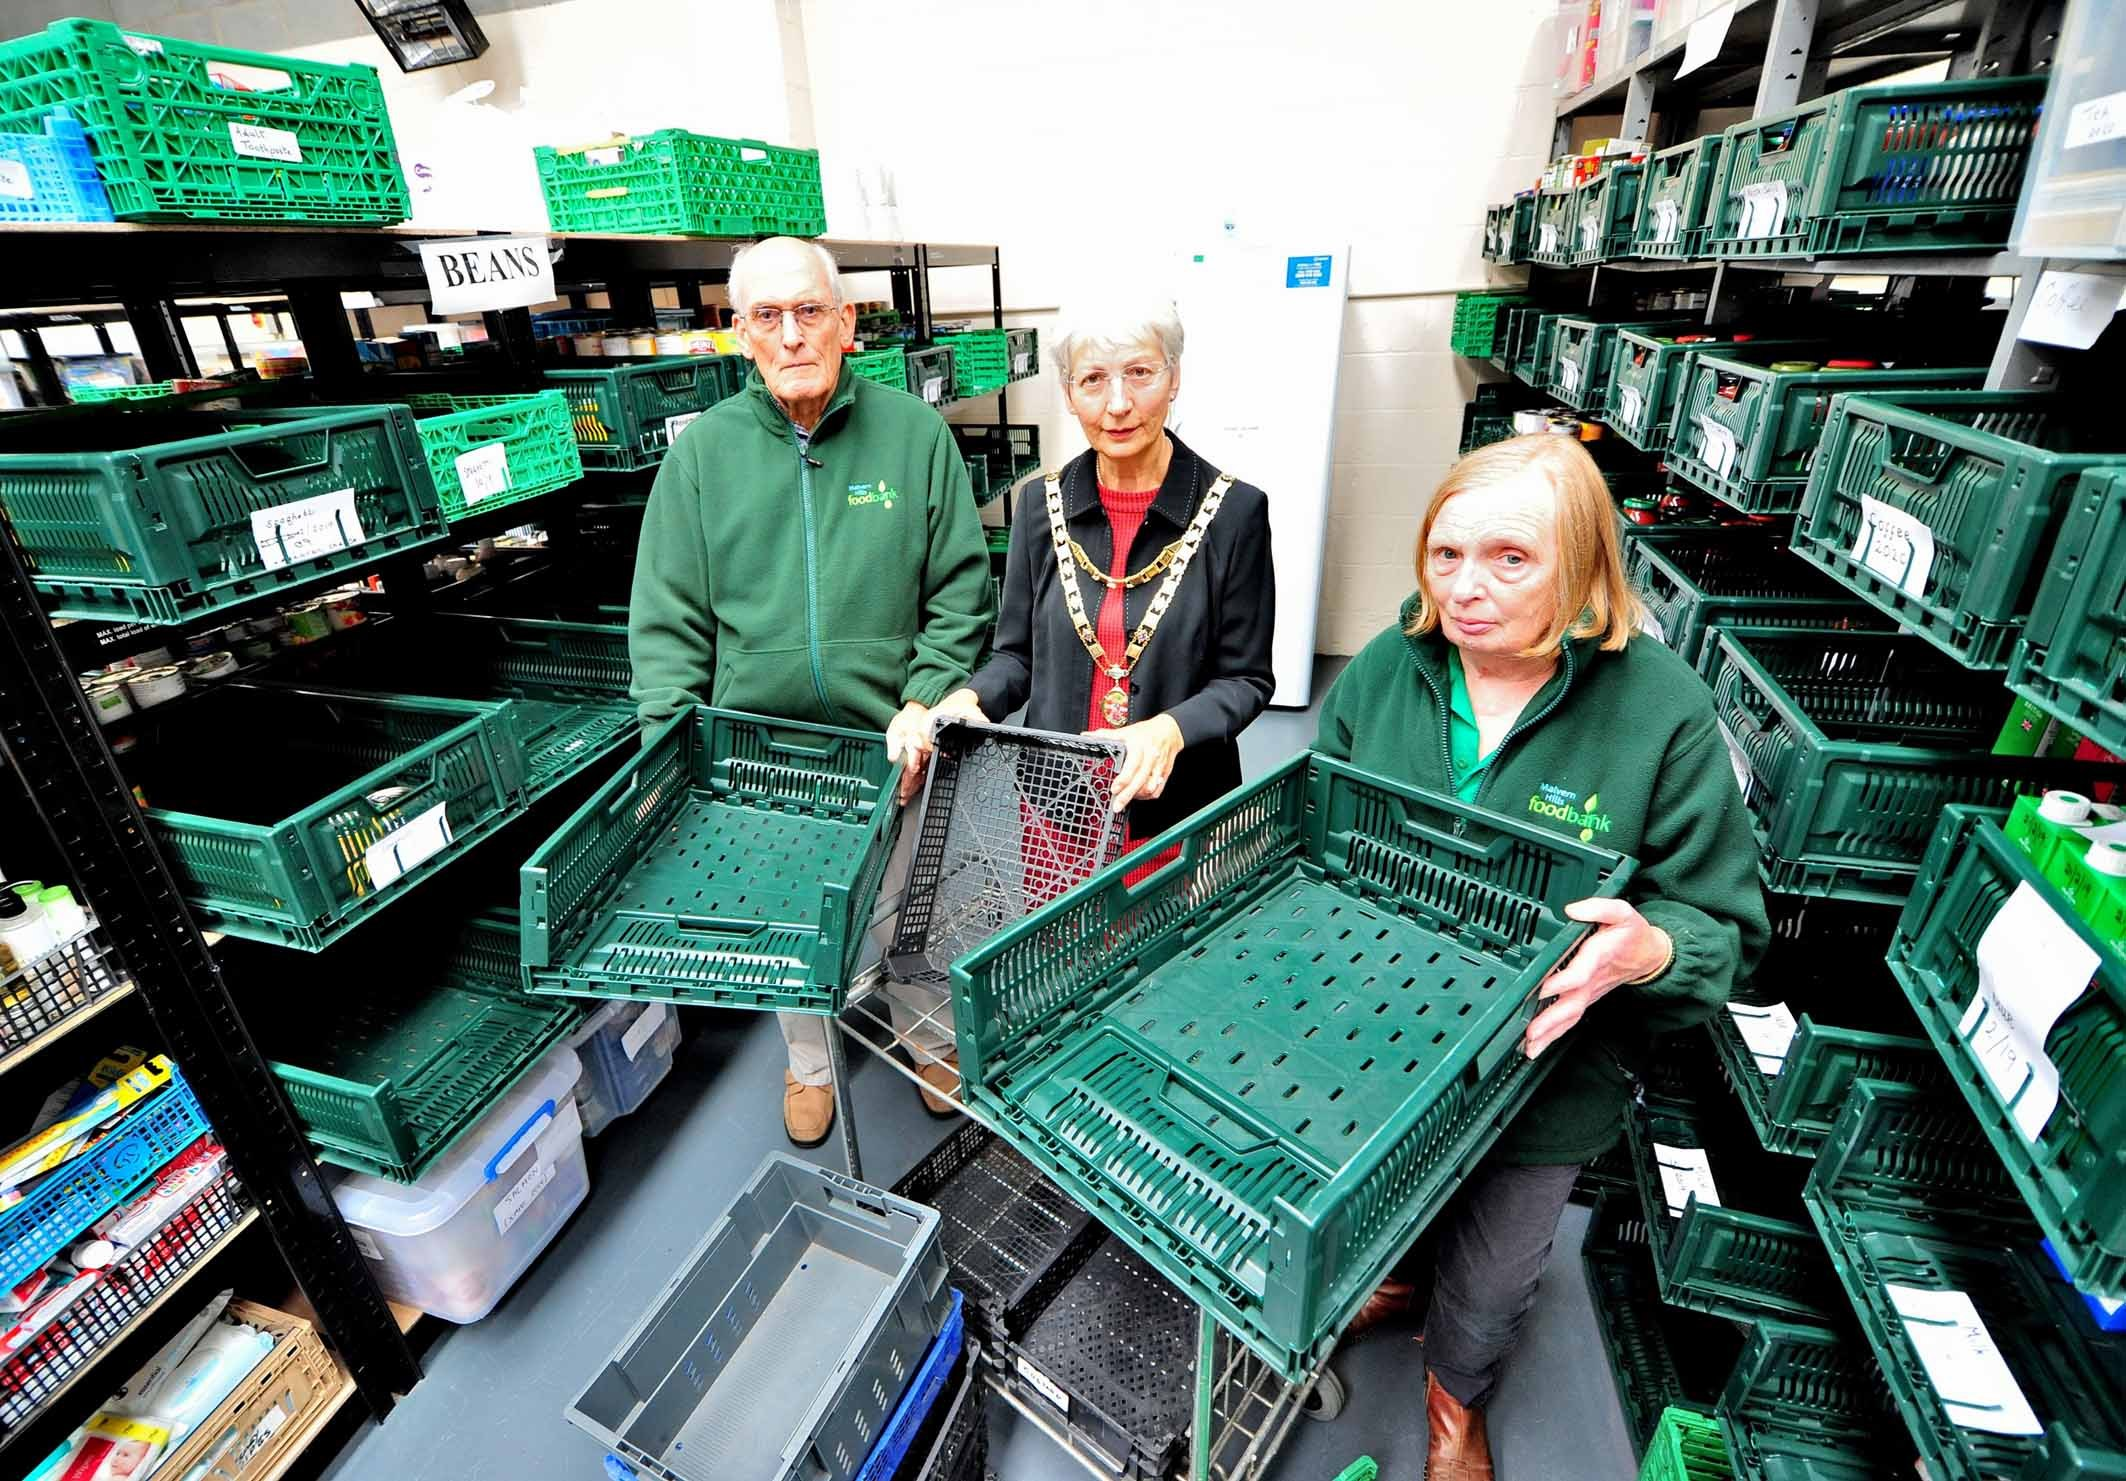 Mayor Councillor Cynthia Palmer, with Gill Butler, Team Leader/Volunteer, and Mike Hayes, Volunteer/Trustee, at the Malvern Food Bank. Pic Jonathan Barry 16.10.18.